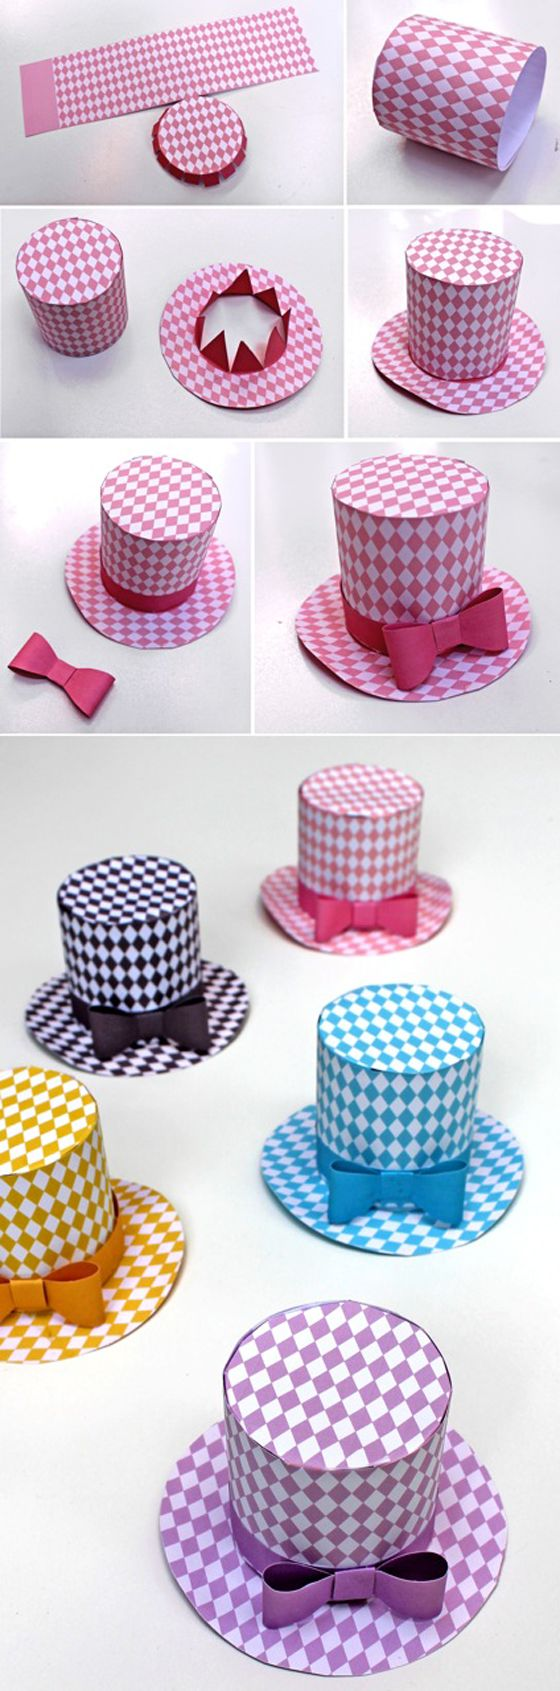 Diamond party hat pattern. Download 5 Mini Top Hats for $2!